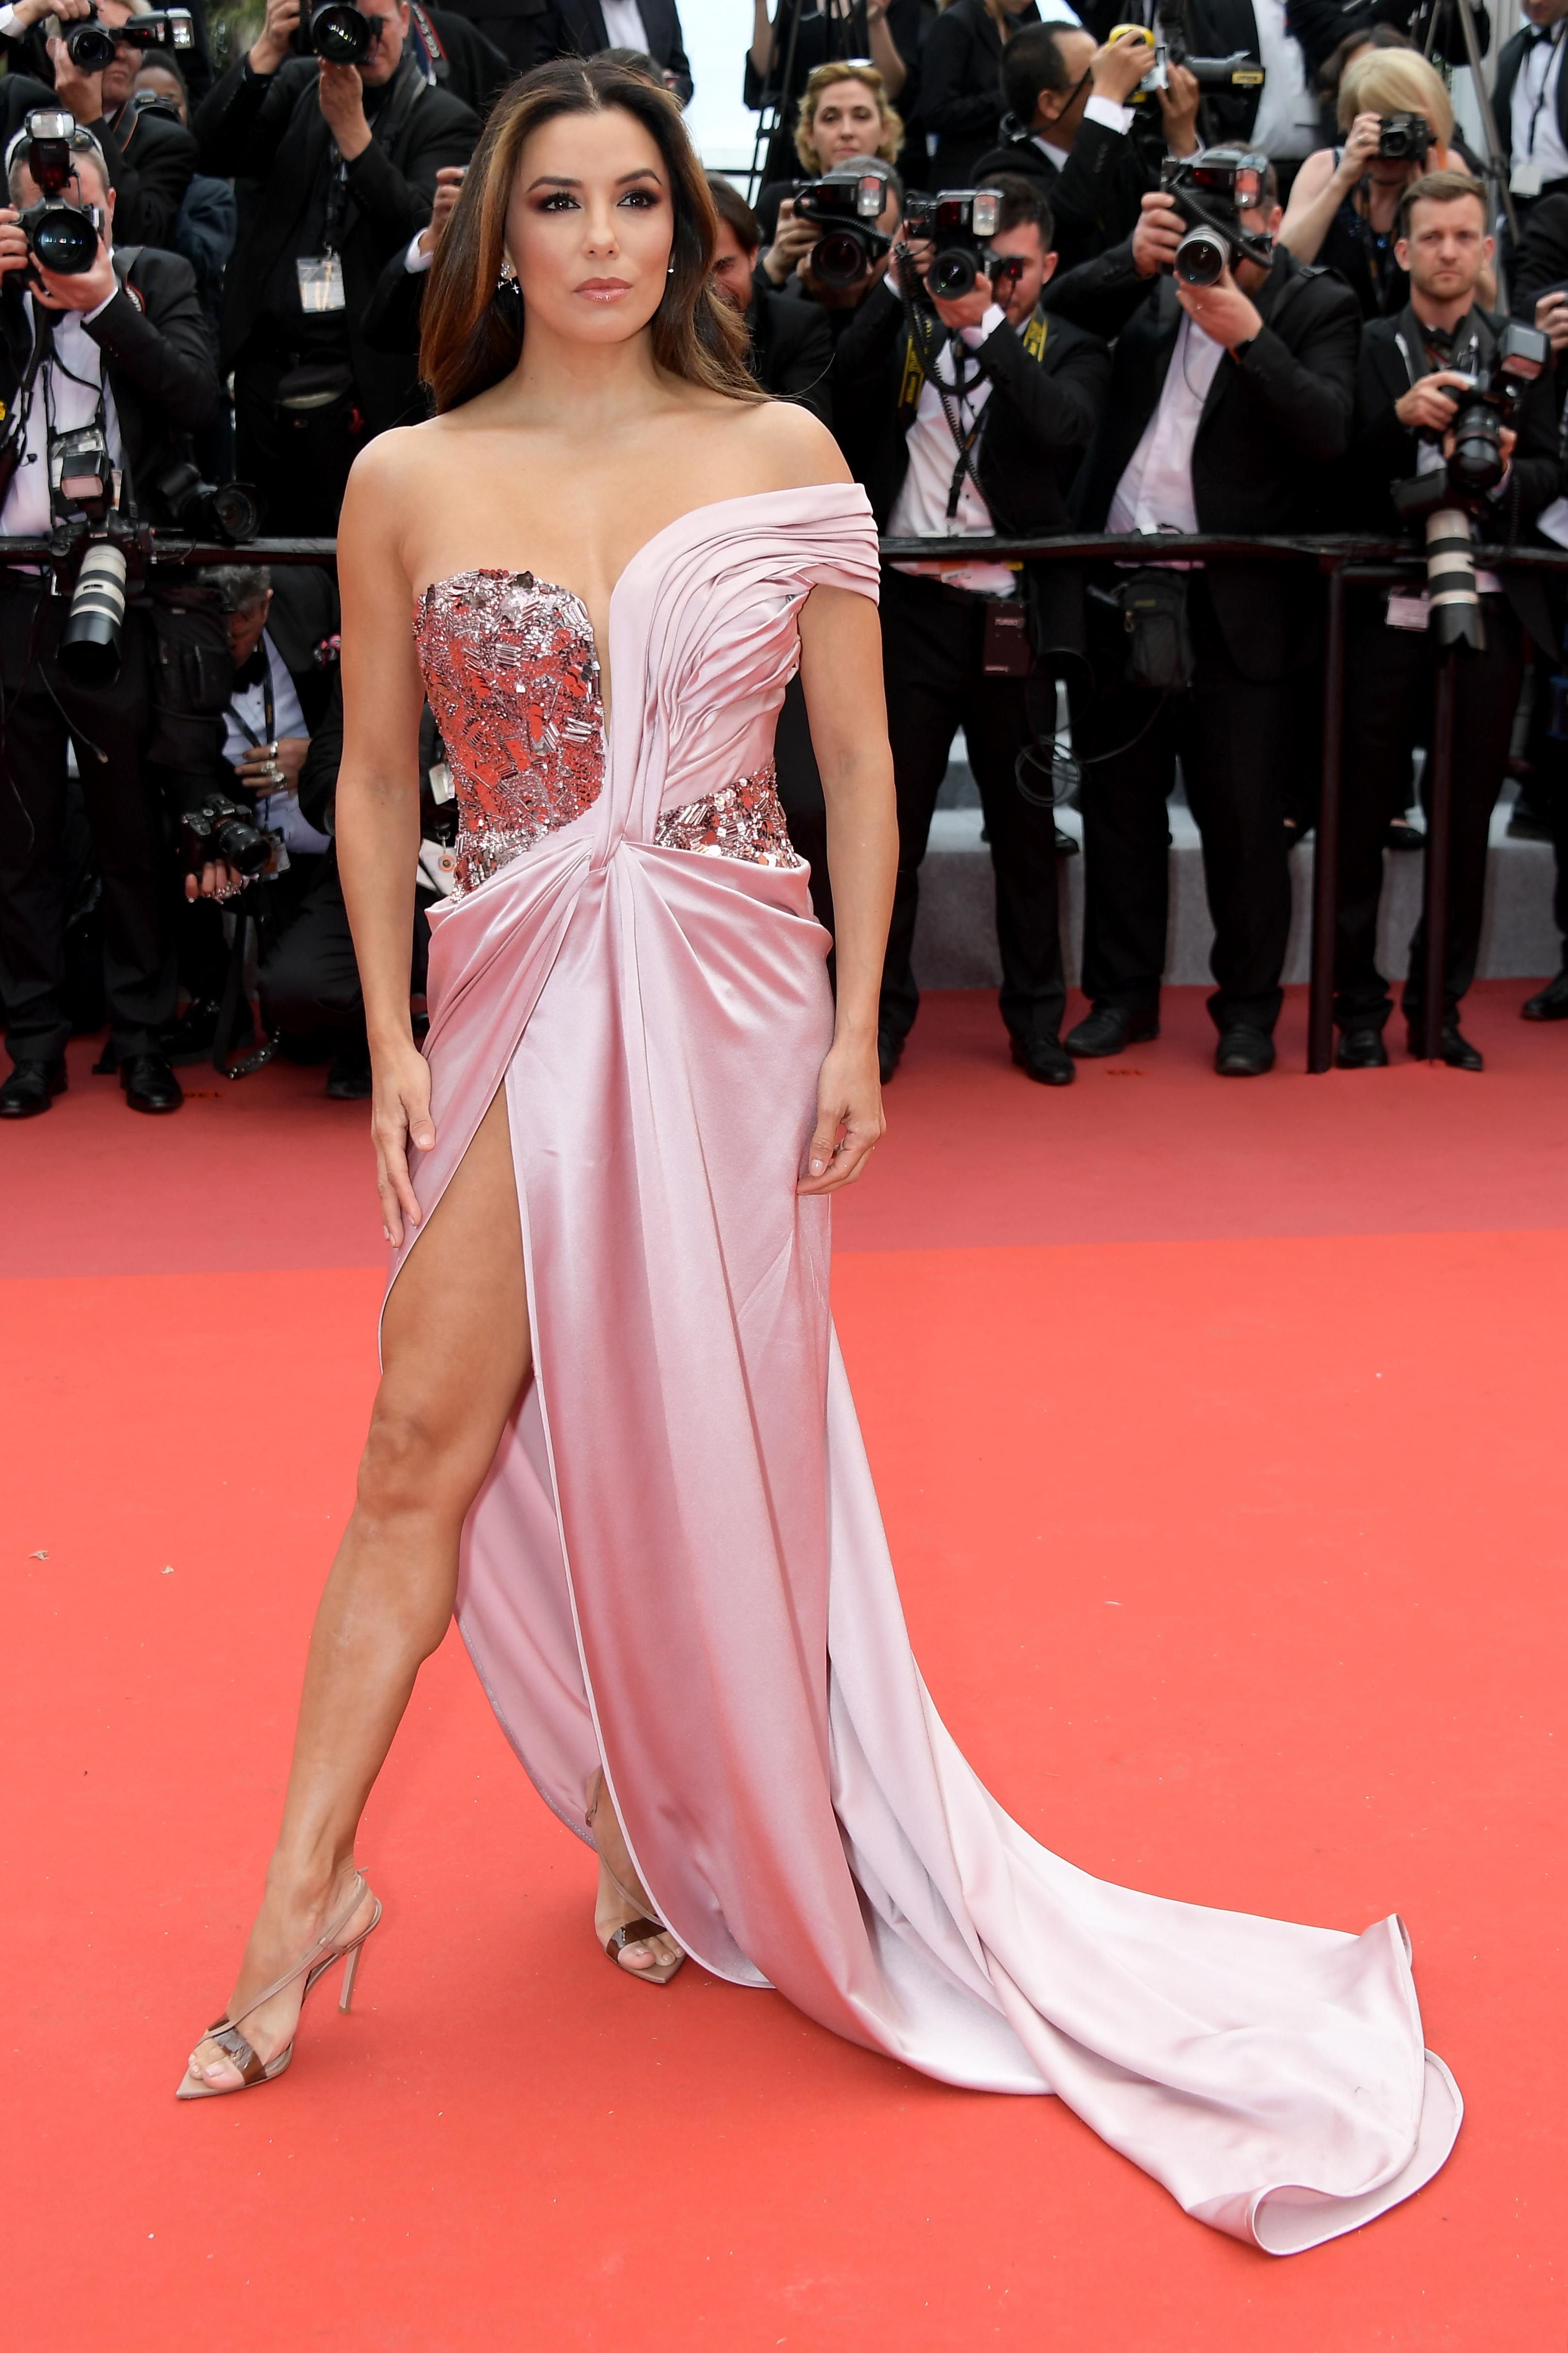 Eva Longoria At the opening ceremony of the Cannes Film Festival and premiere of The Dead Don't Die .